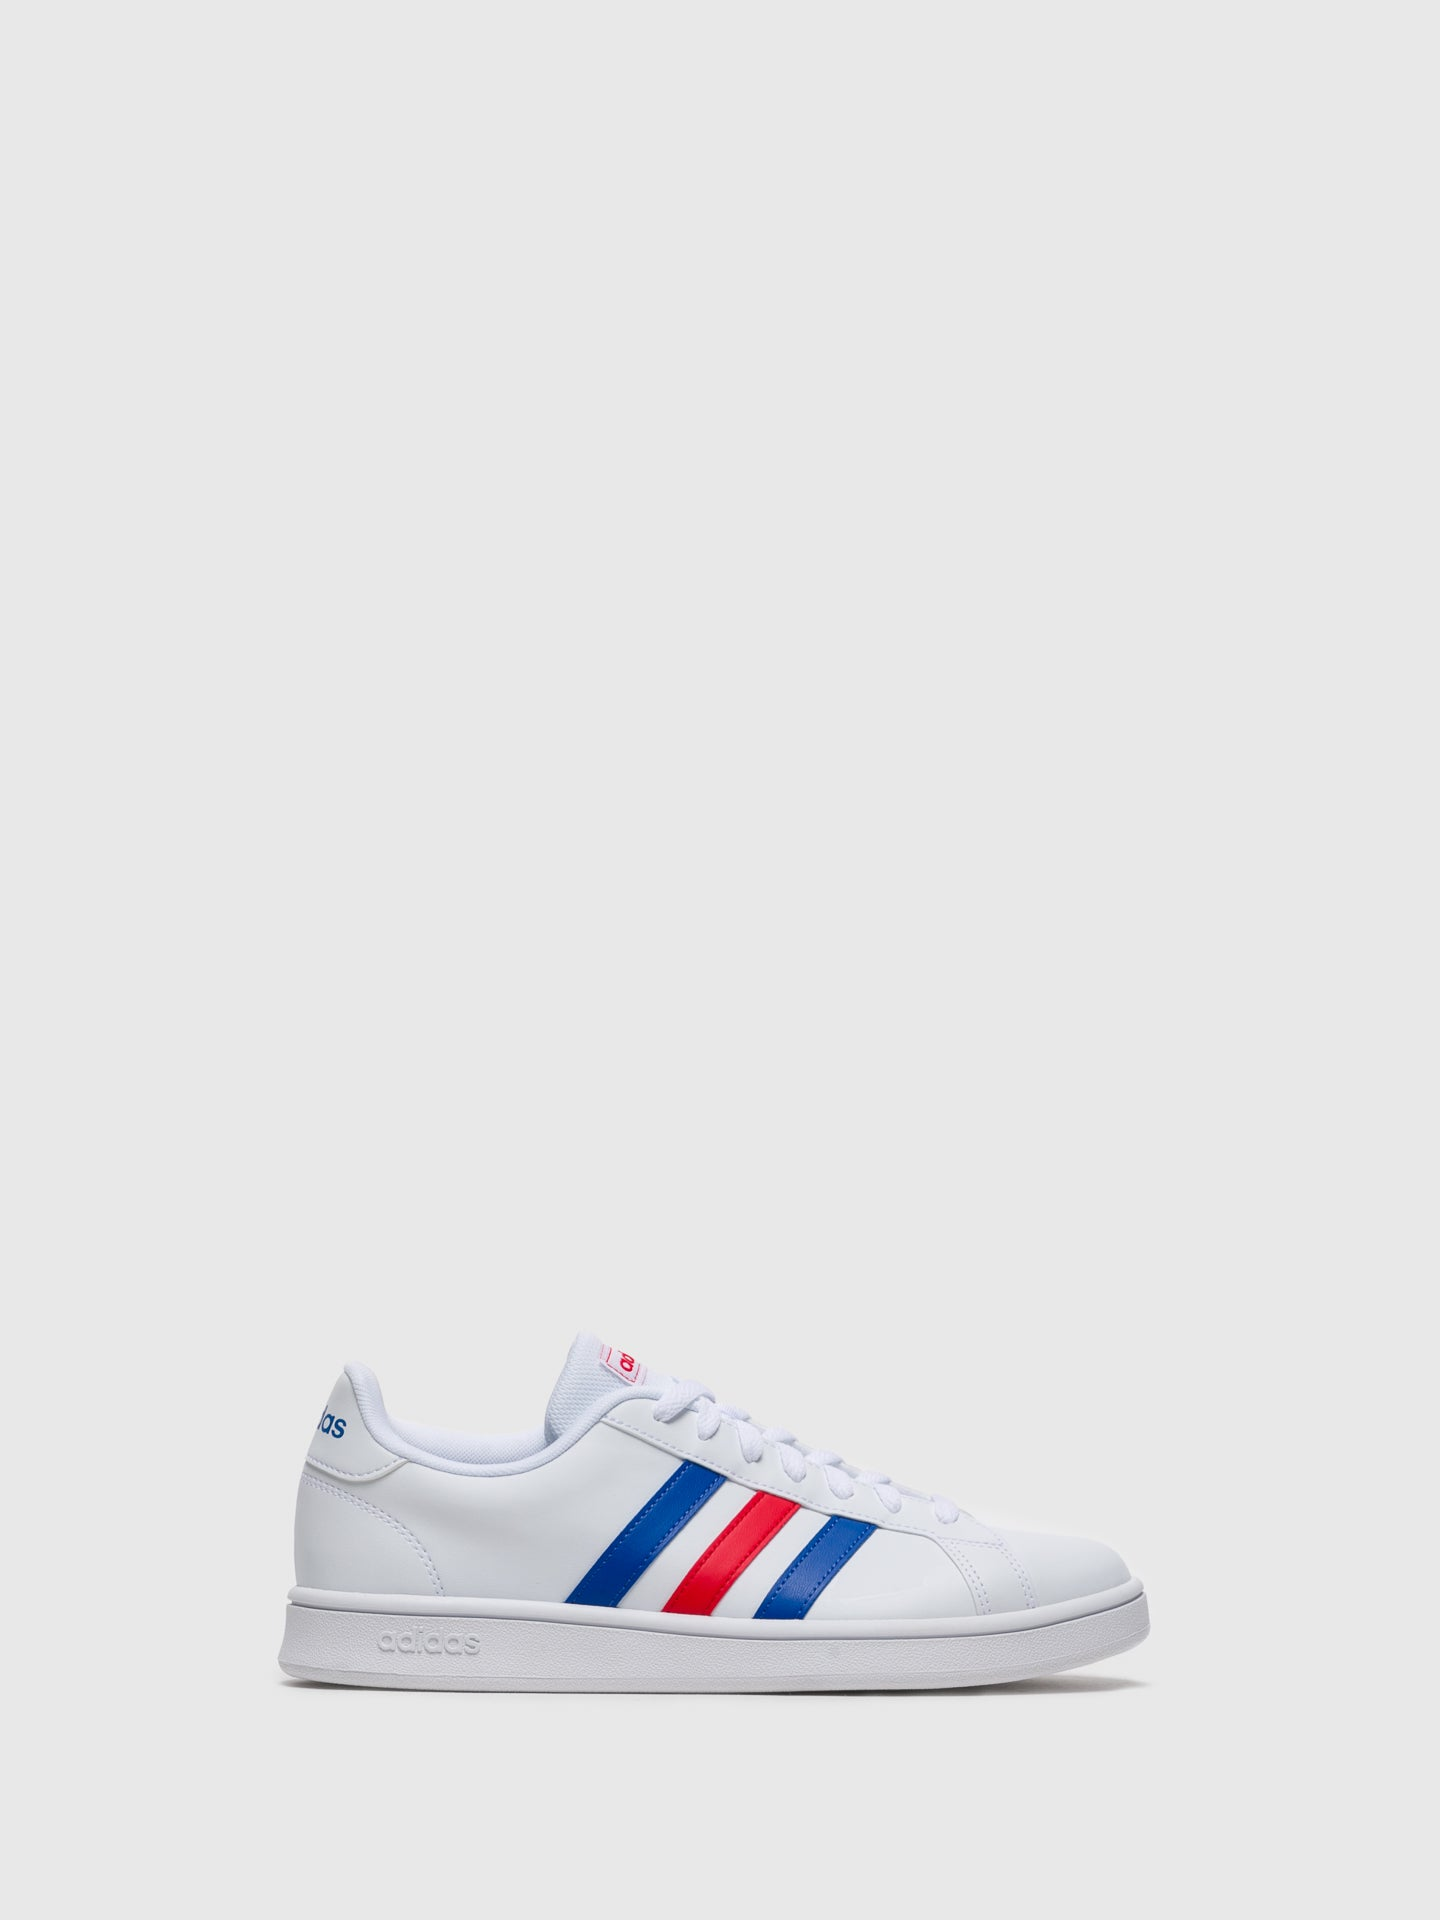 Adidas Zapatillas con Cordones en color Blanco